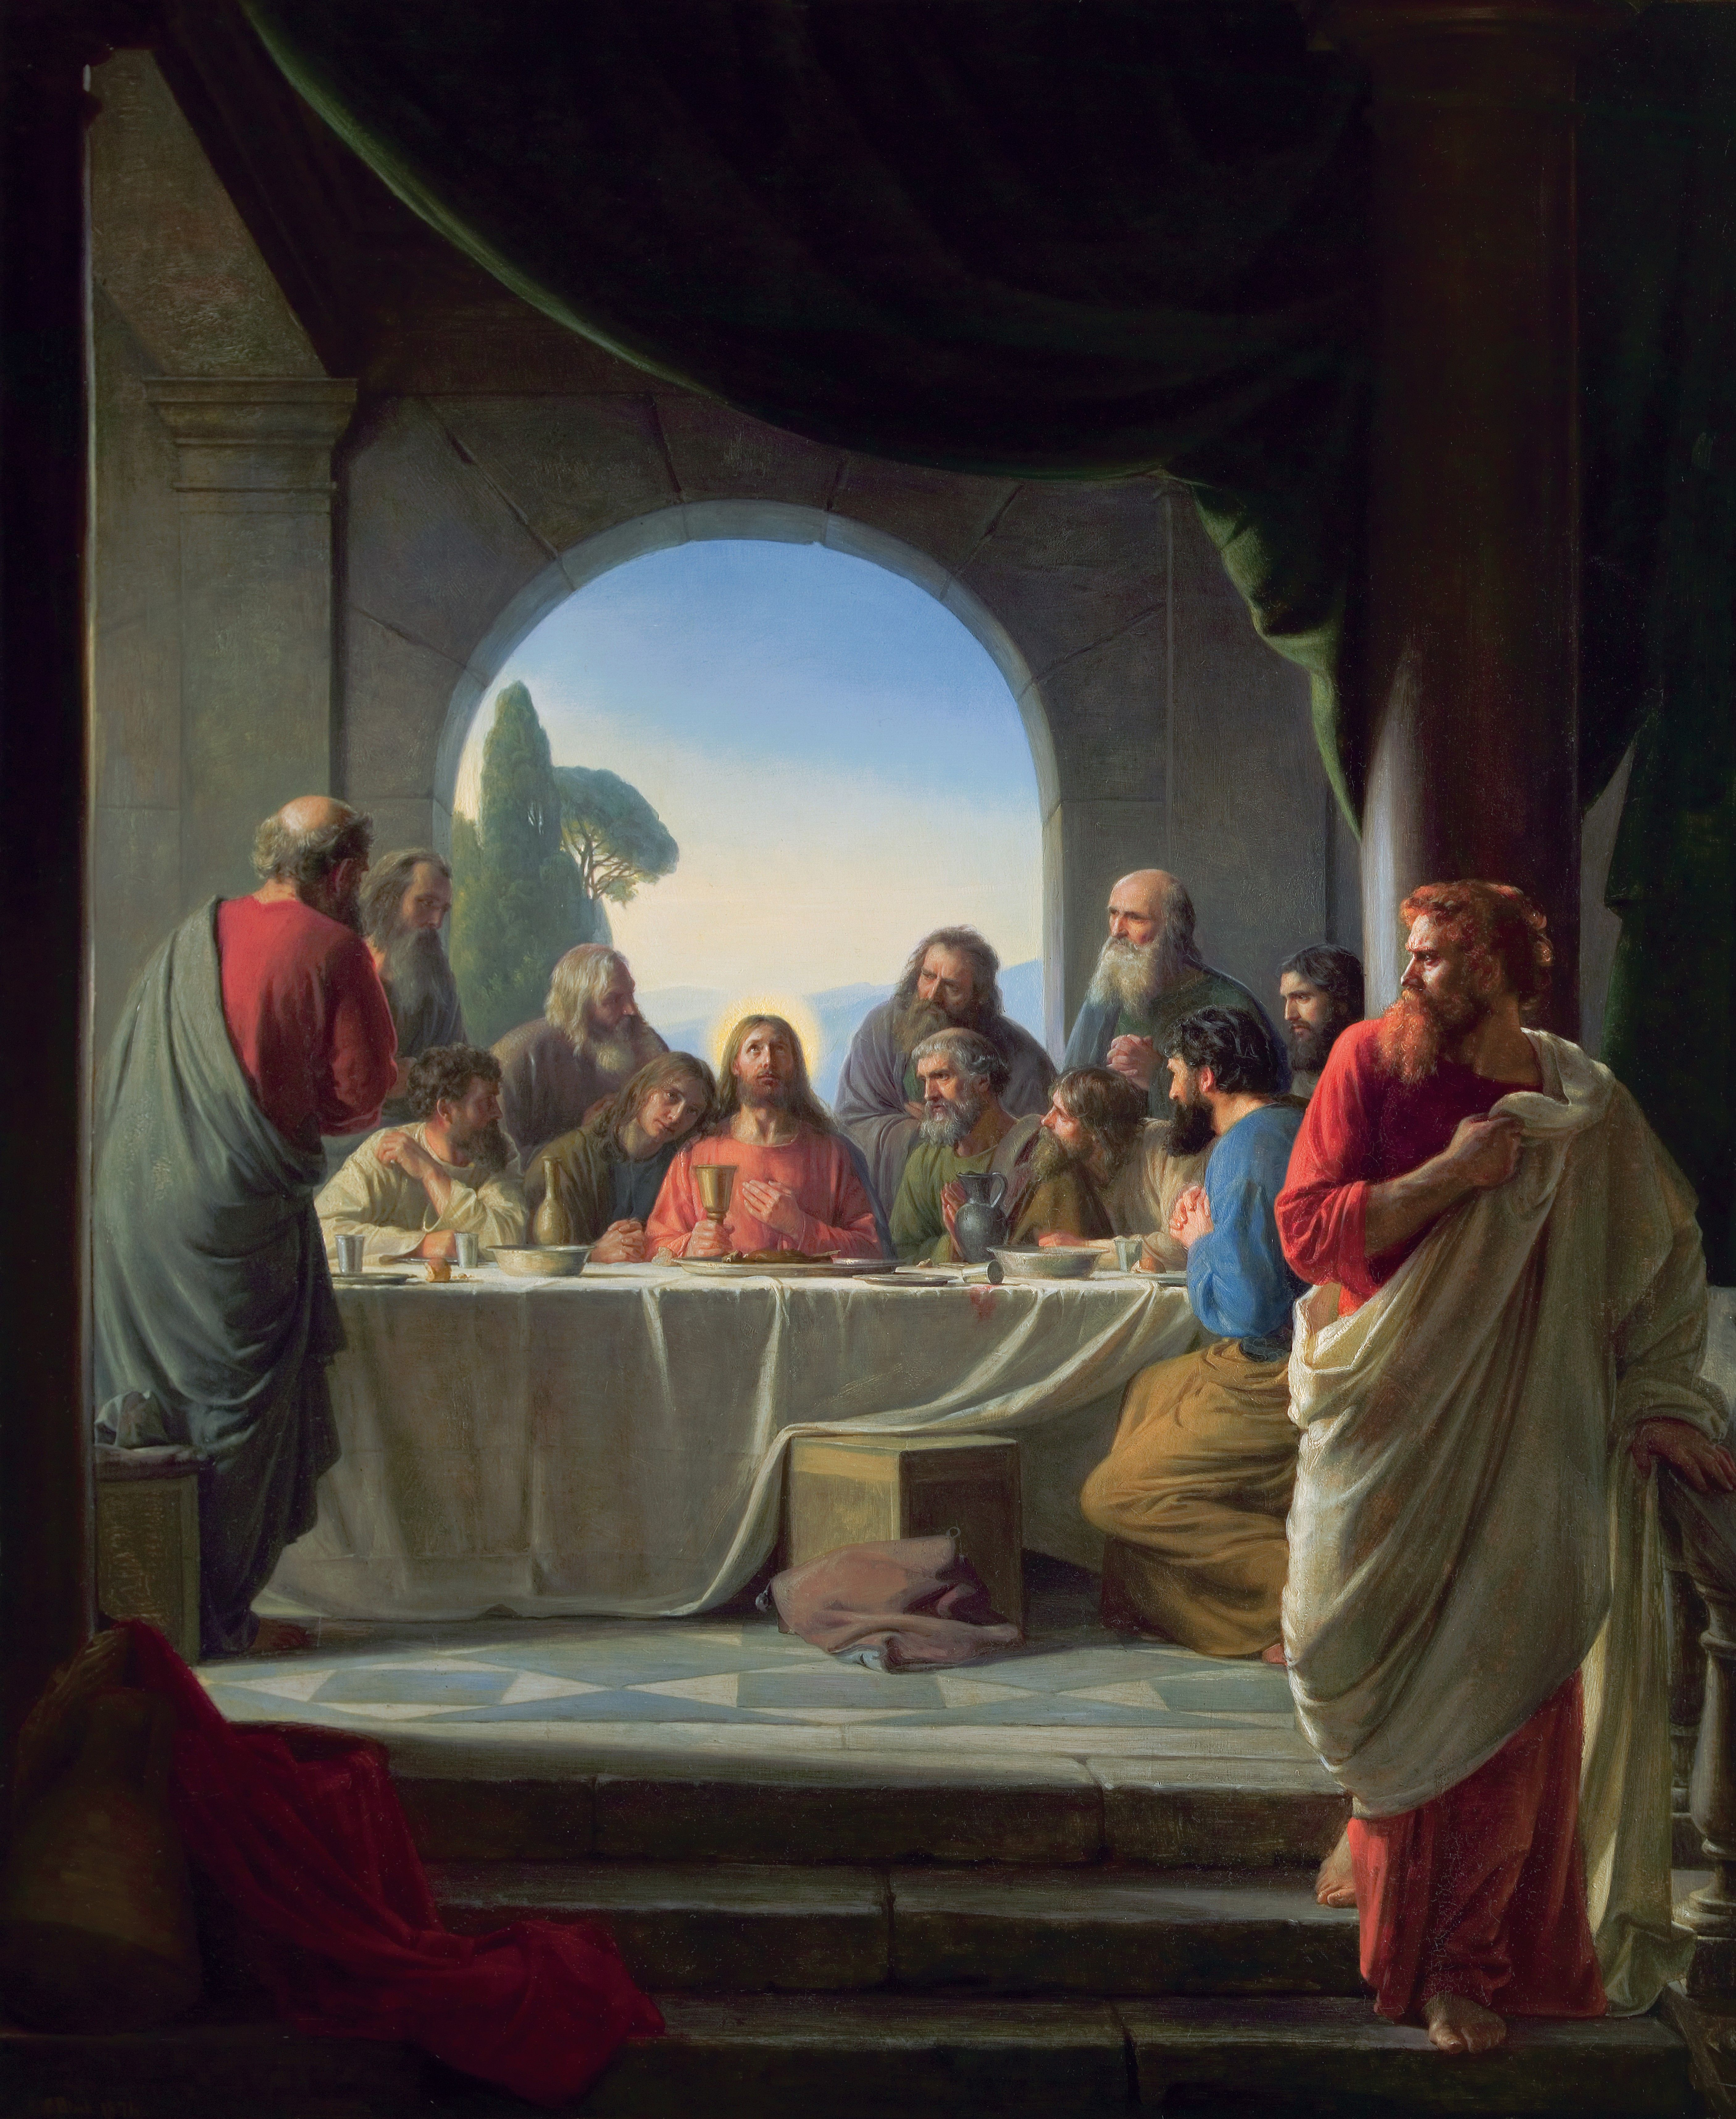 The Last Supper, by Carl Heinrich Bloch (62174); GAK 225; Primary manual 1-70; Primary manual 2-54; Primary manual 3-22; Primary manual 7-29; Matthew 26:17–30; Mark 14:12–26; Luke 22:7–23, 39; John 13:1, 23–35; 14–17; 18:1; Joseph Smith Translation, Matthew 26:22–24 (in the Bible appendix)